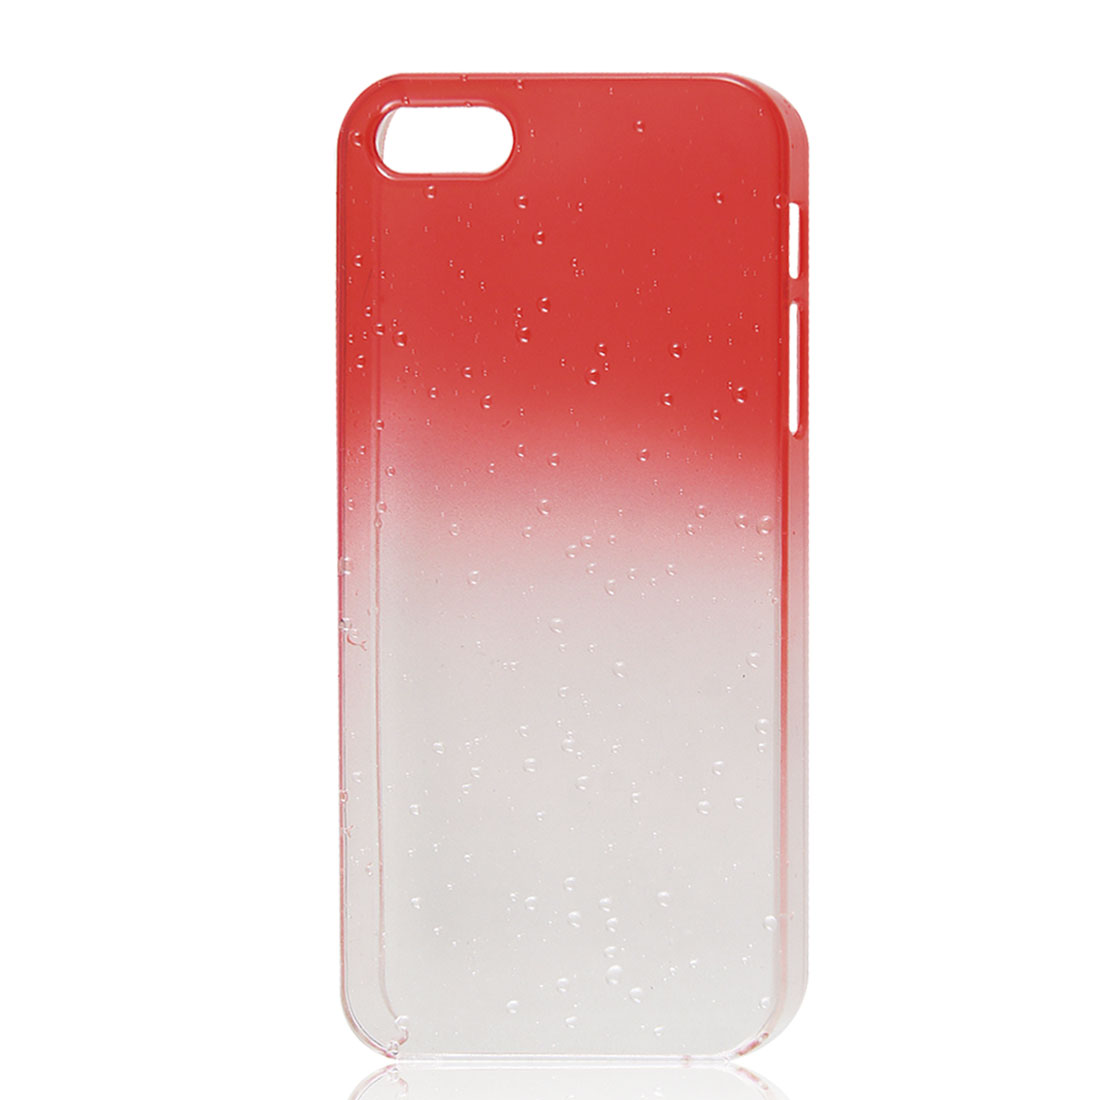 Gradient Red Clear 3D Water Drop Hard Back Case Cover for iPhone 5 5G